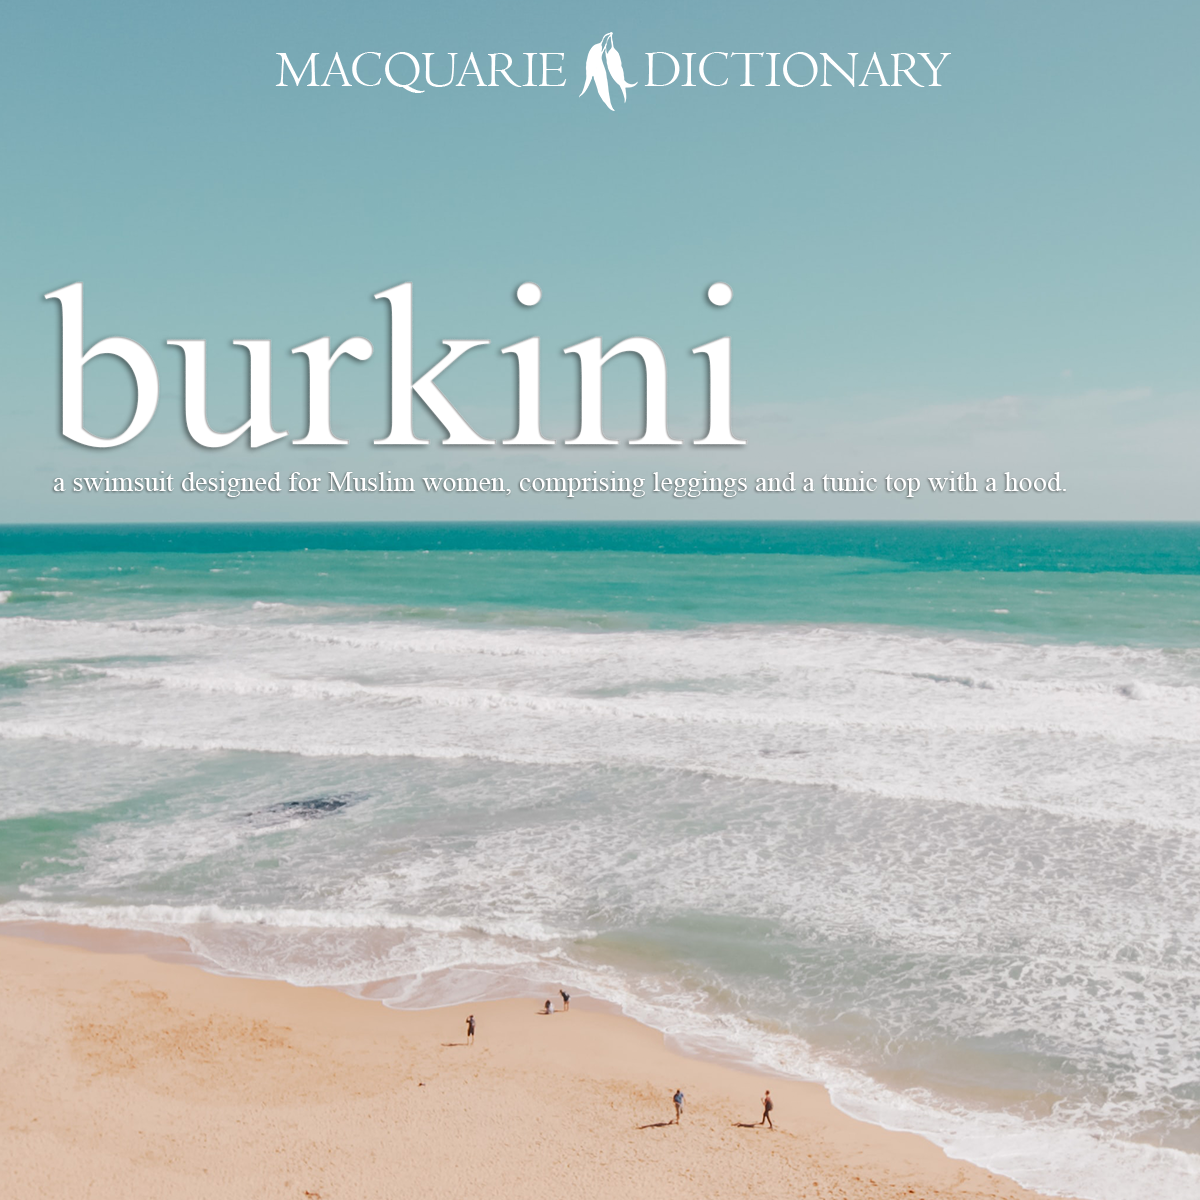 burkini - a swimsuit designed for Muslim women, comprising leggings and a tunic top with a hood